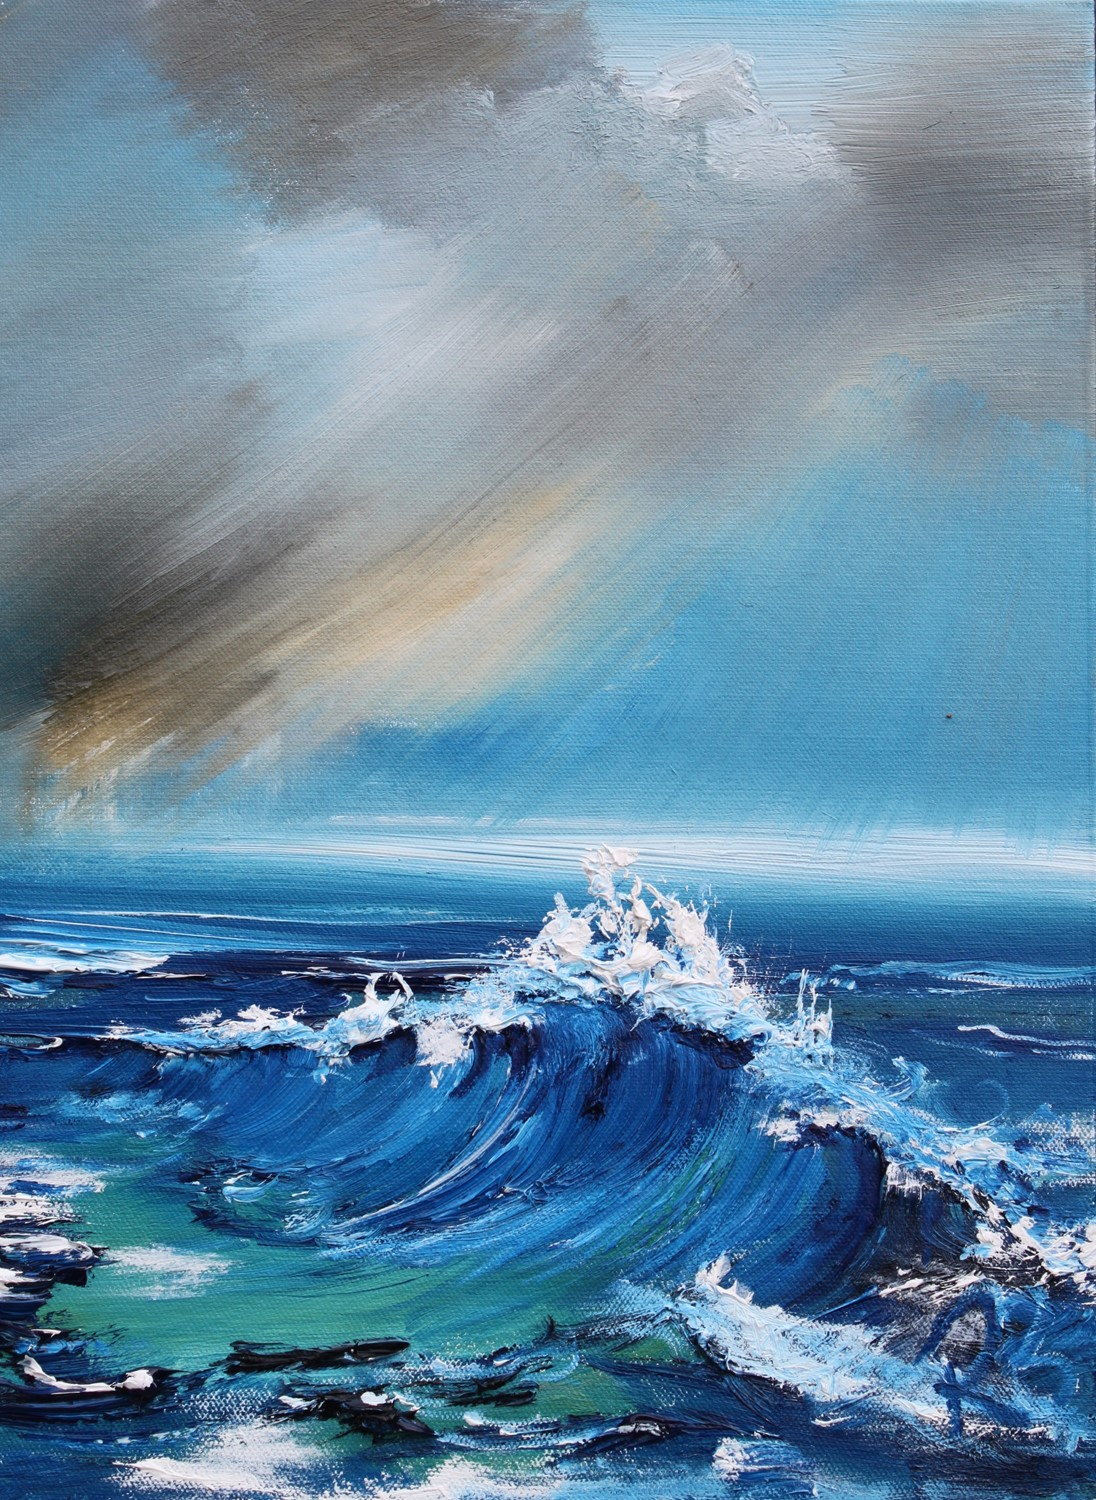 'Racing Waves' by artist Rosanne Barr